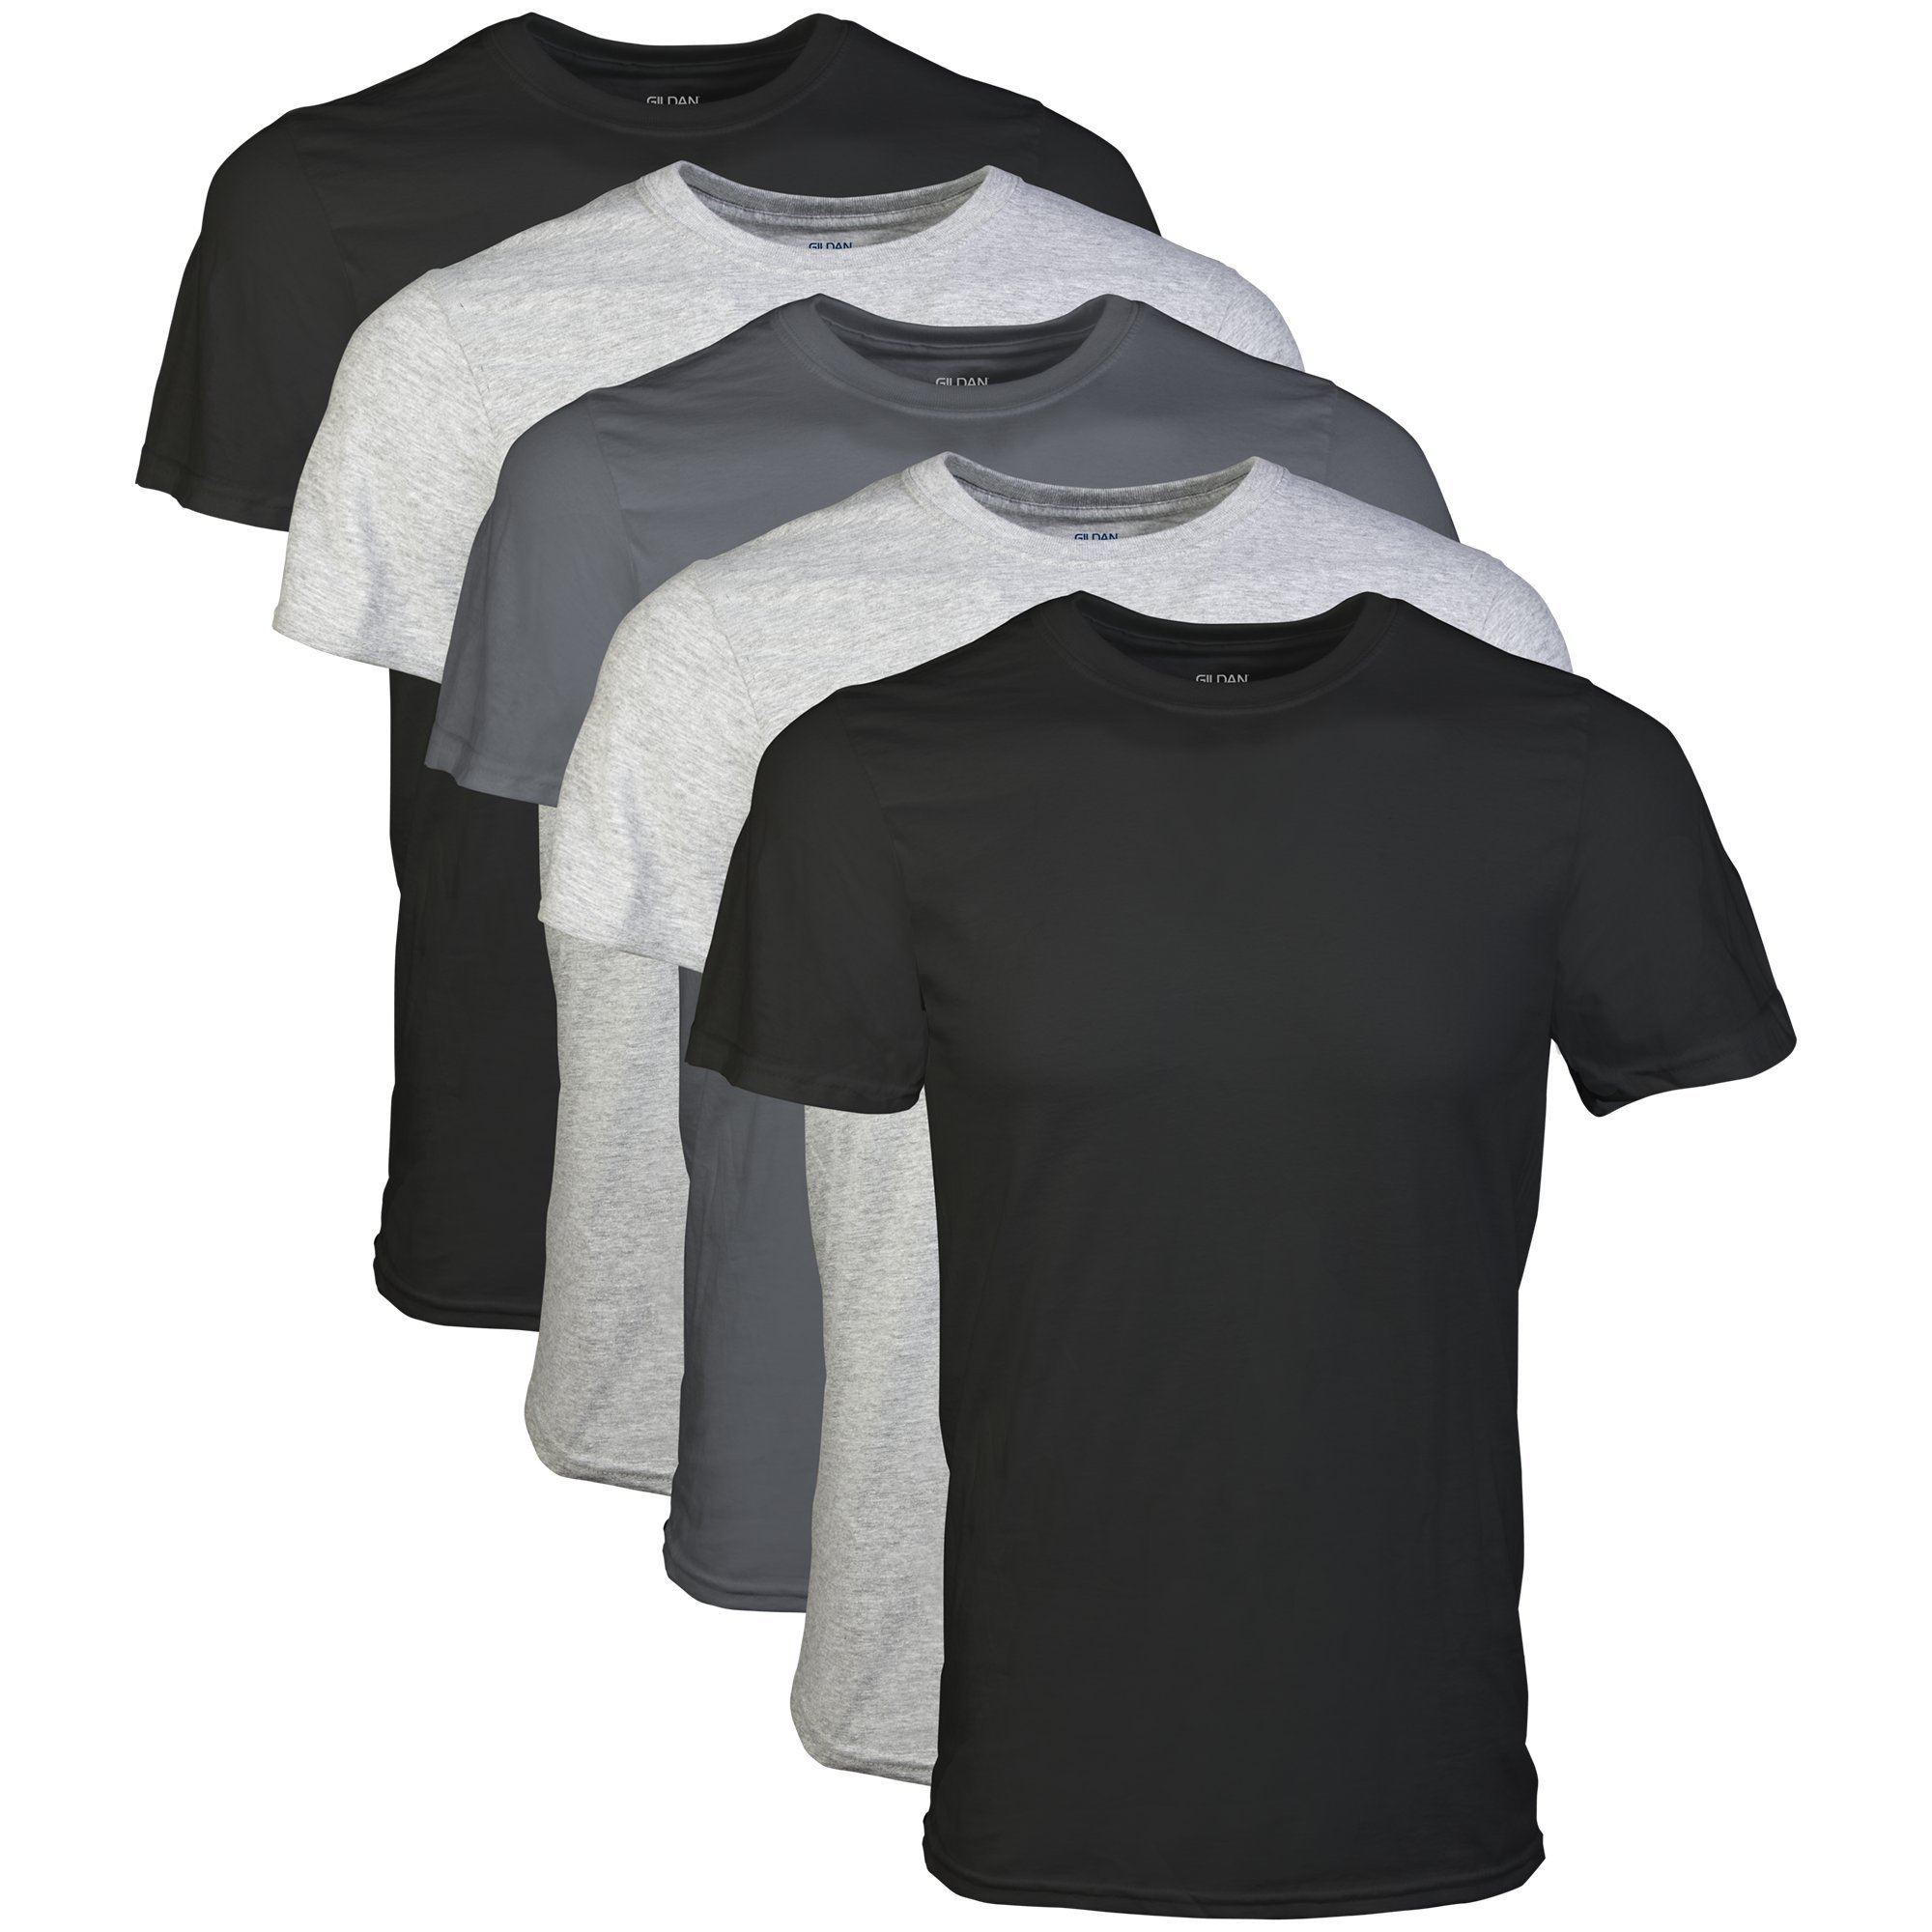 Gildan Men's Crew T-Shirt 5 Pack, Assortment, Medium